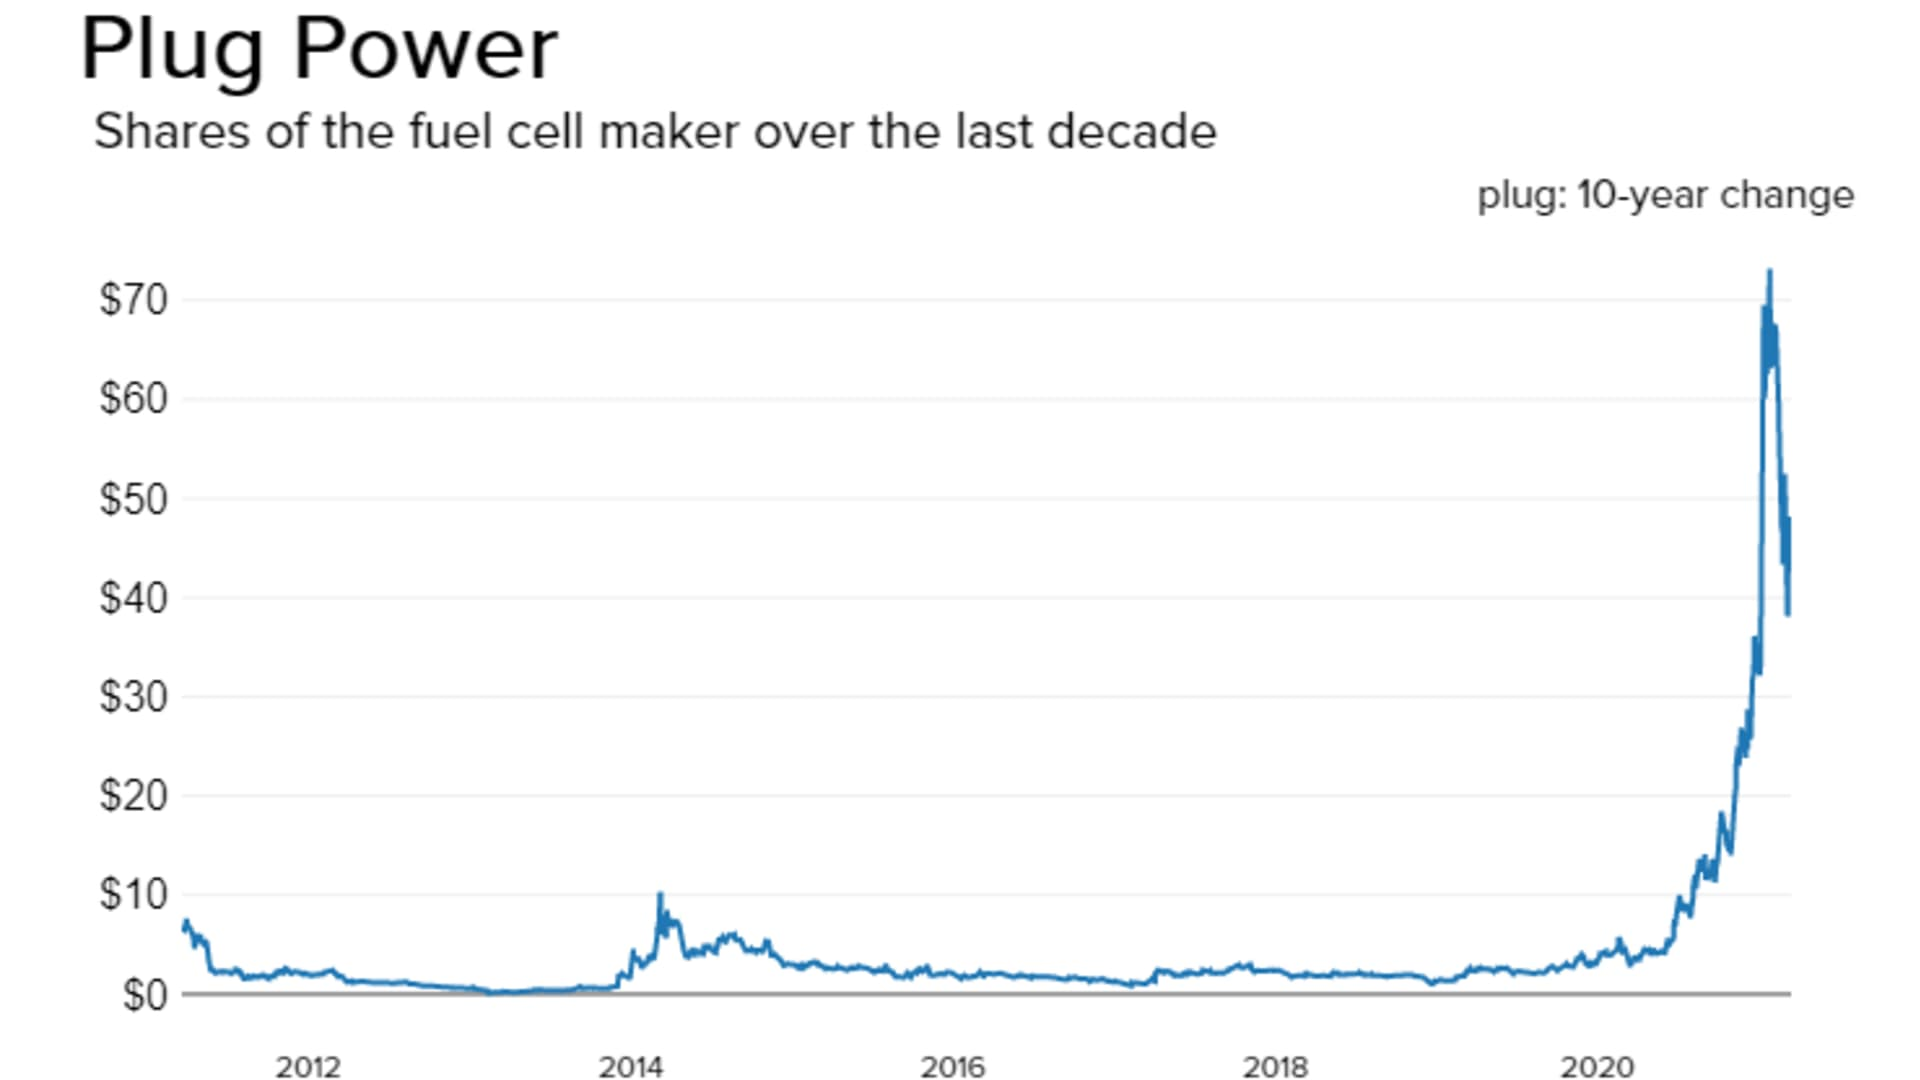 Hydrogen fuel cell maker Plug Power's stock over the last decade